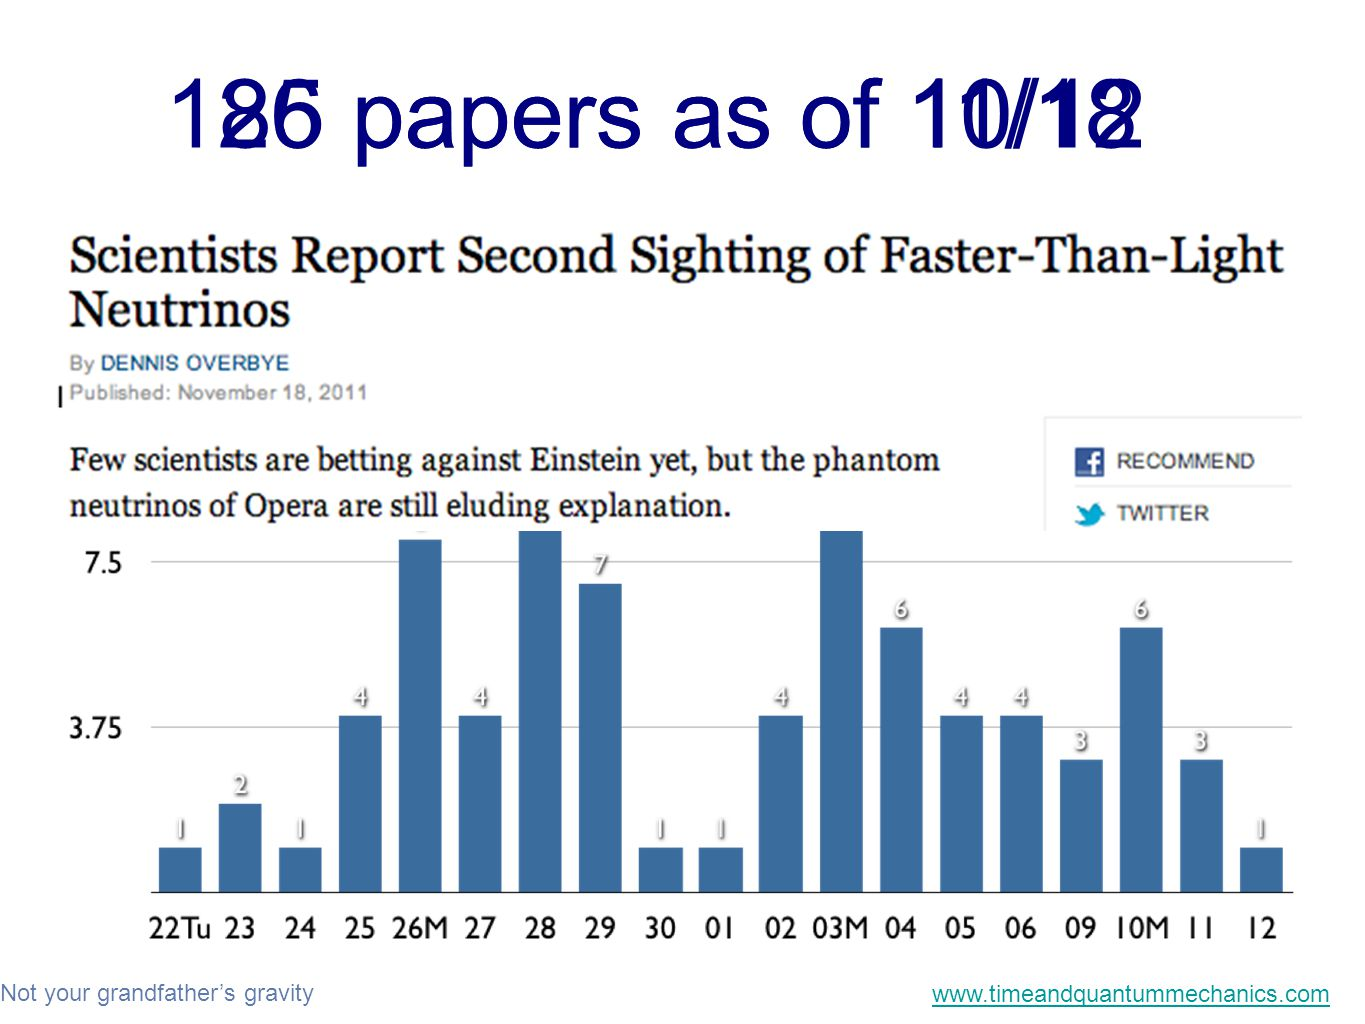 Not your grandfather's gravity www.timeandquantummechanics.com 85 papers as of 10/12126 papers as of 11/18